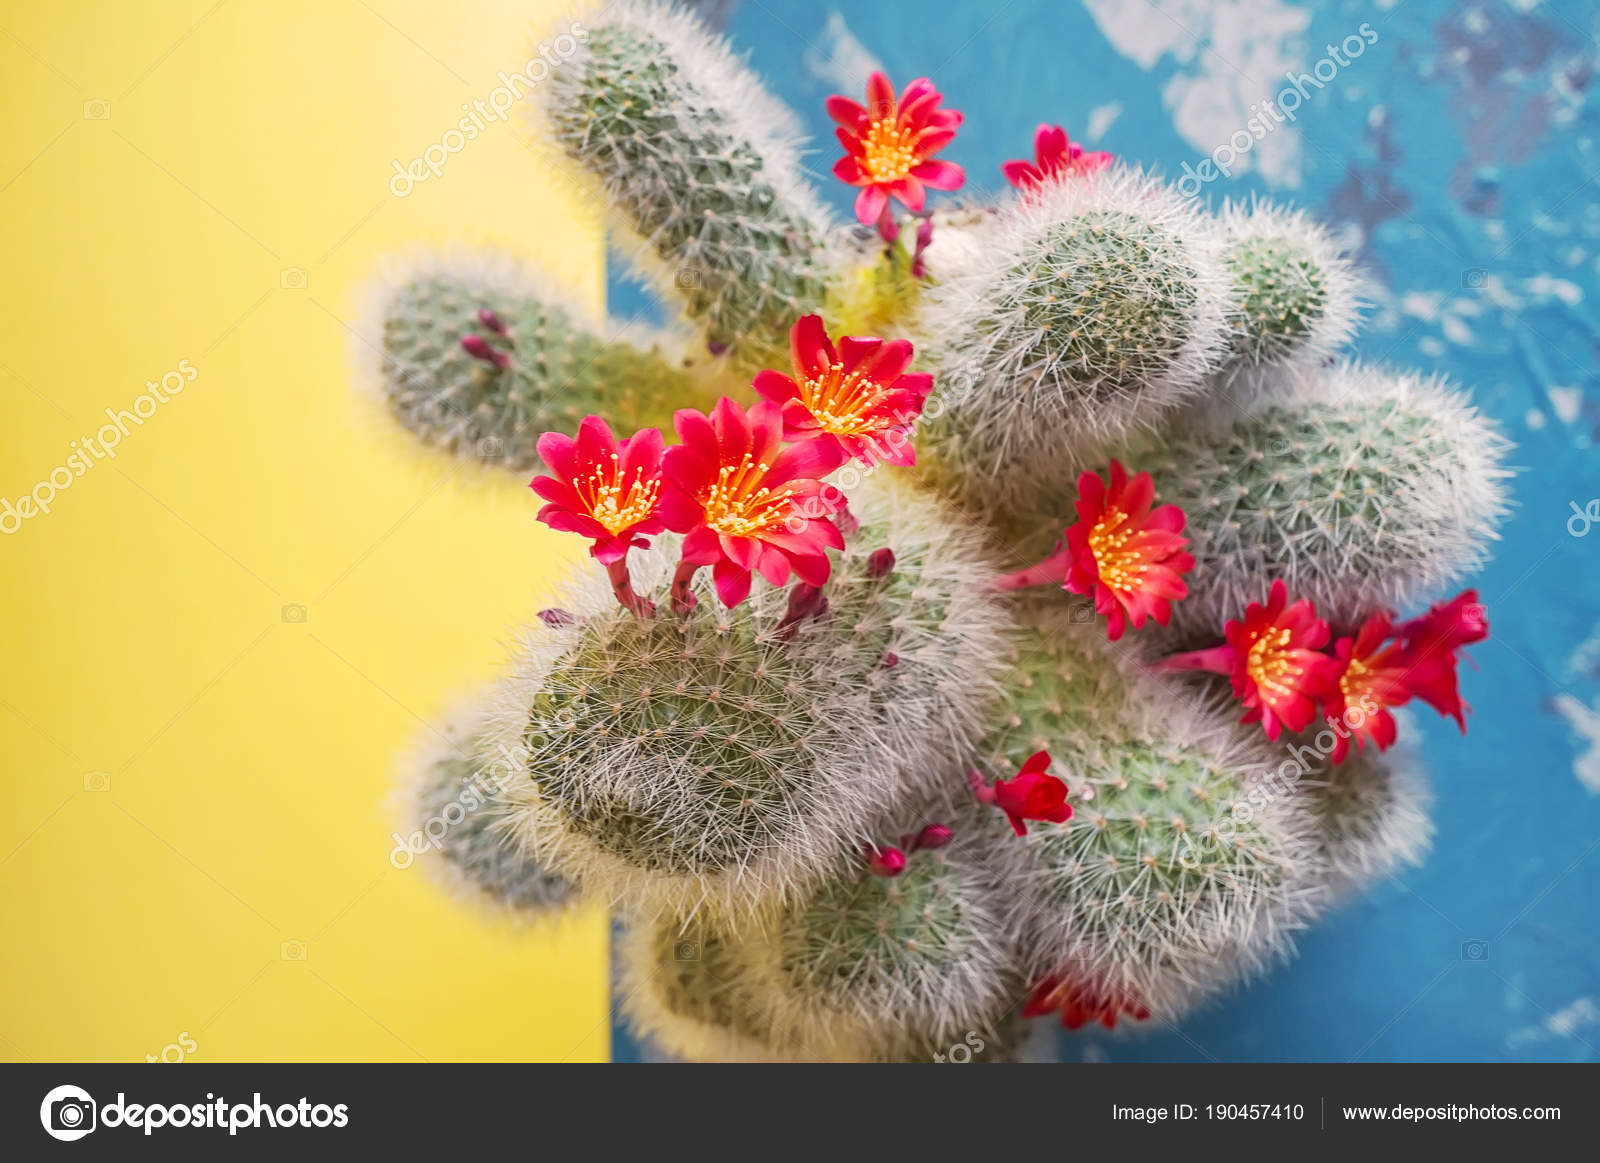 Ball Cactus With Lots Of Red Cactus Flowers On Dichotomous Yellow